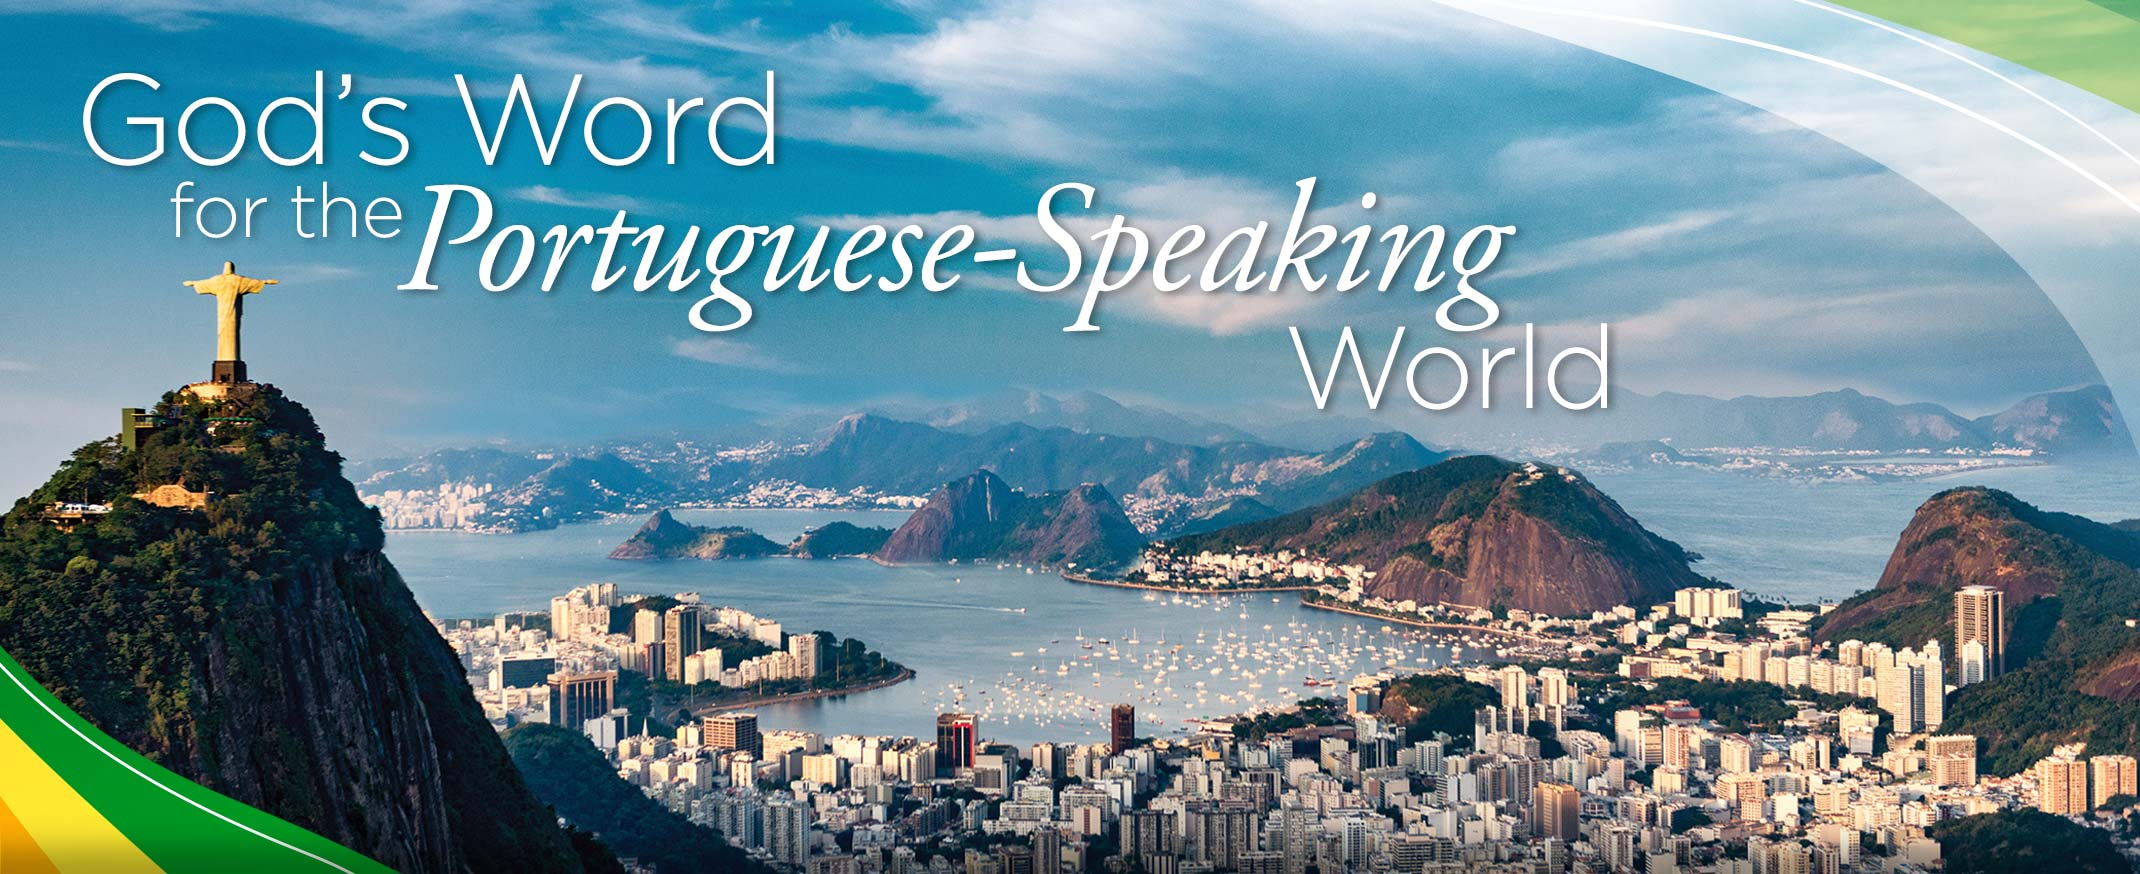 God's Word for the Portuguese-Speaking World